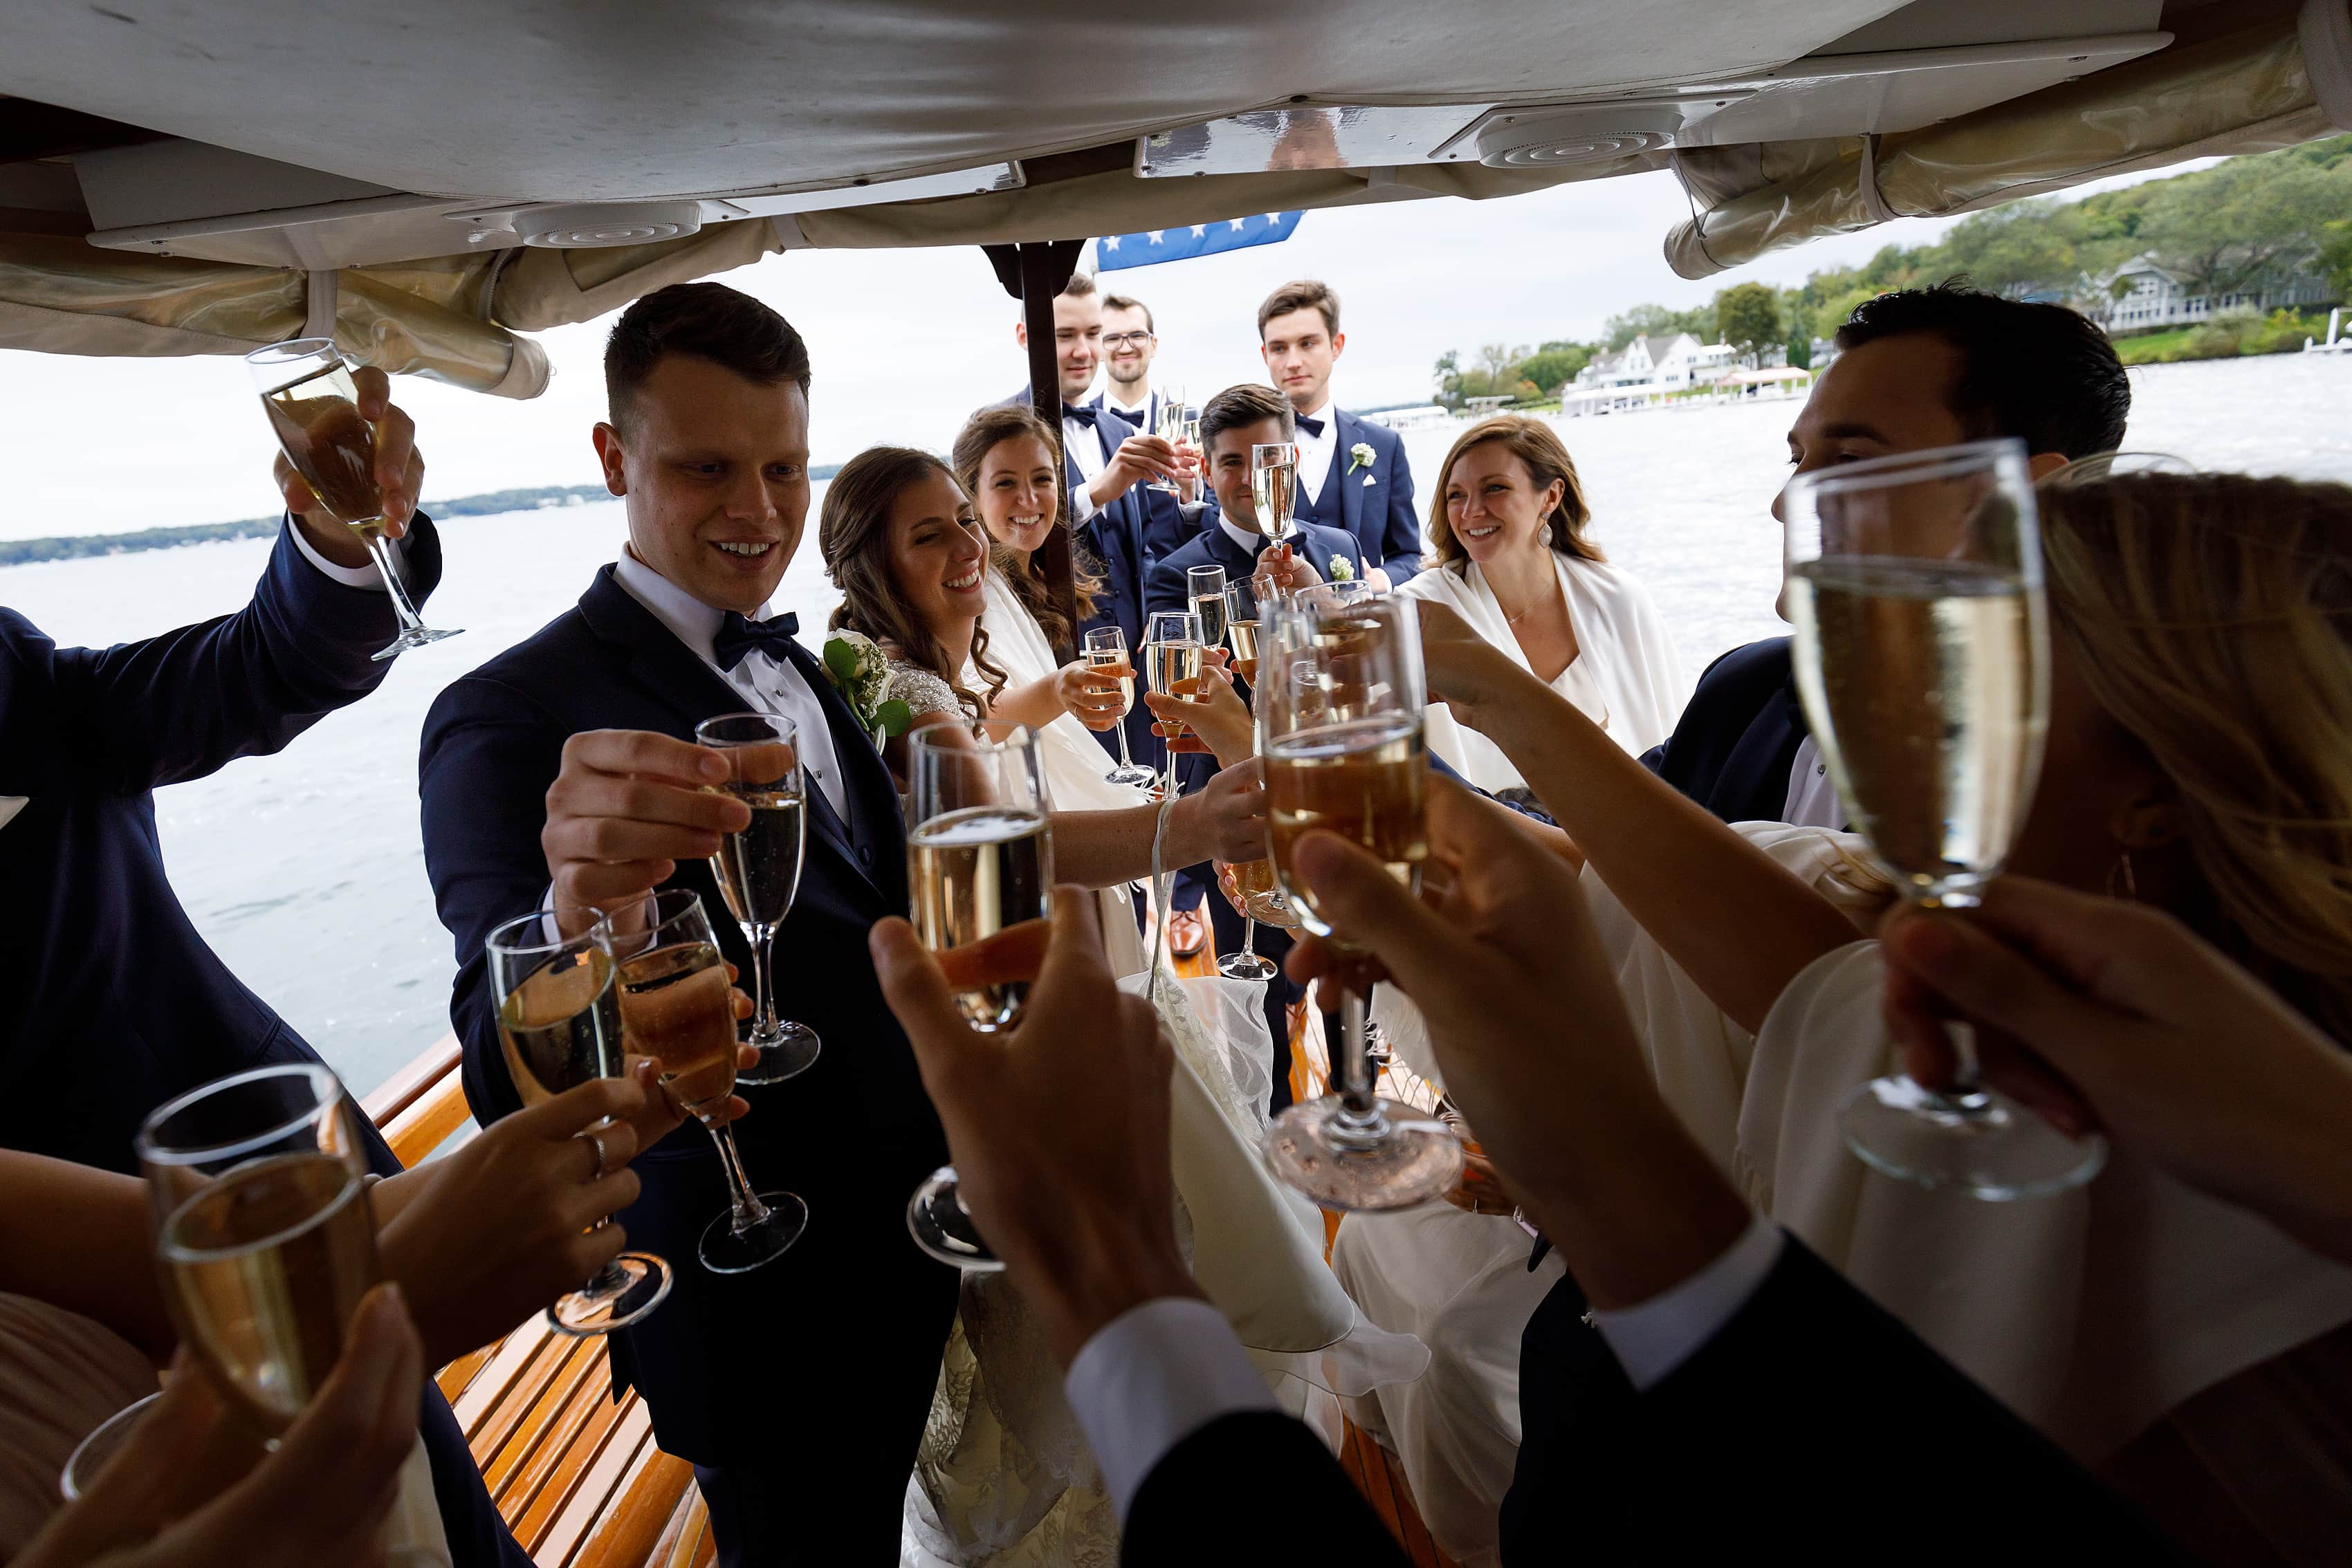 Bride and groom toast with wedding party on a boat at Lake Geneva Yacht Club in Lake Geneva, Wisconsin